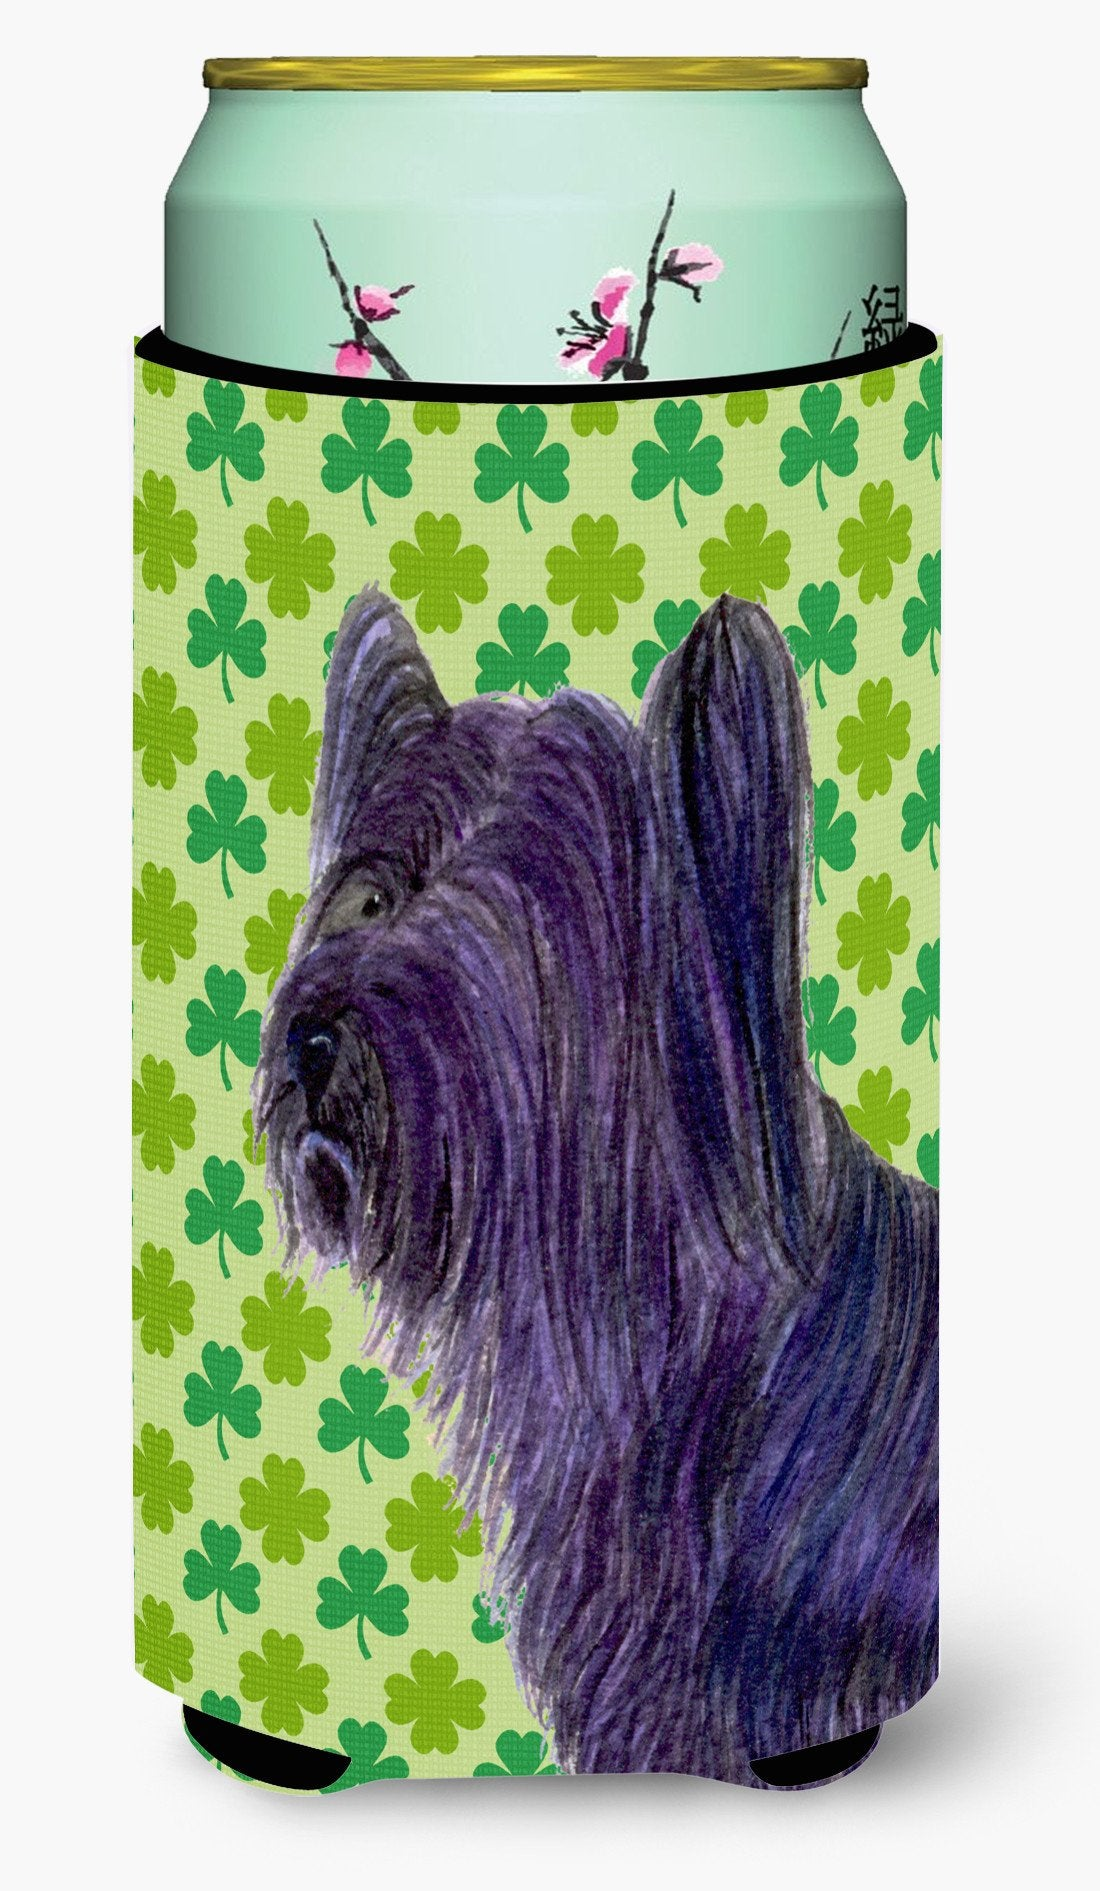 Skye Terrier St. Patrick's Day Shamrock Portrait  Tall Boy Beverage Insulator Beverage Insulator Hugger by Caroline's Treasures